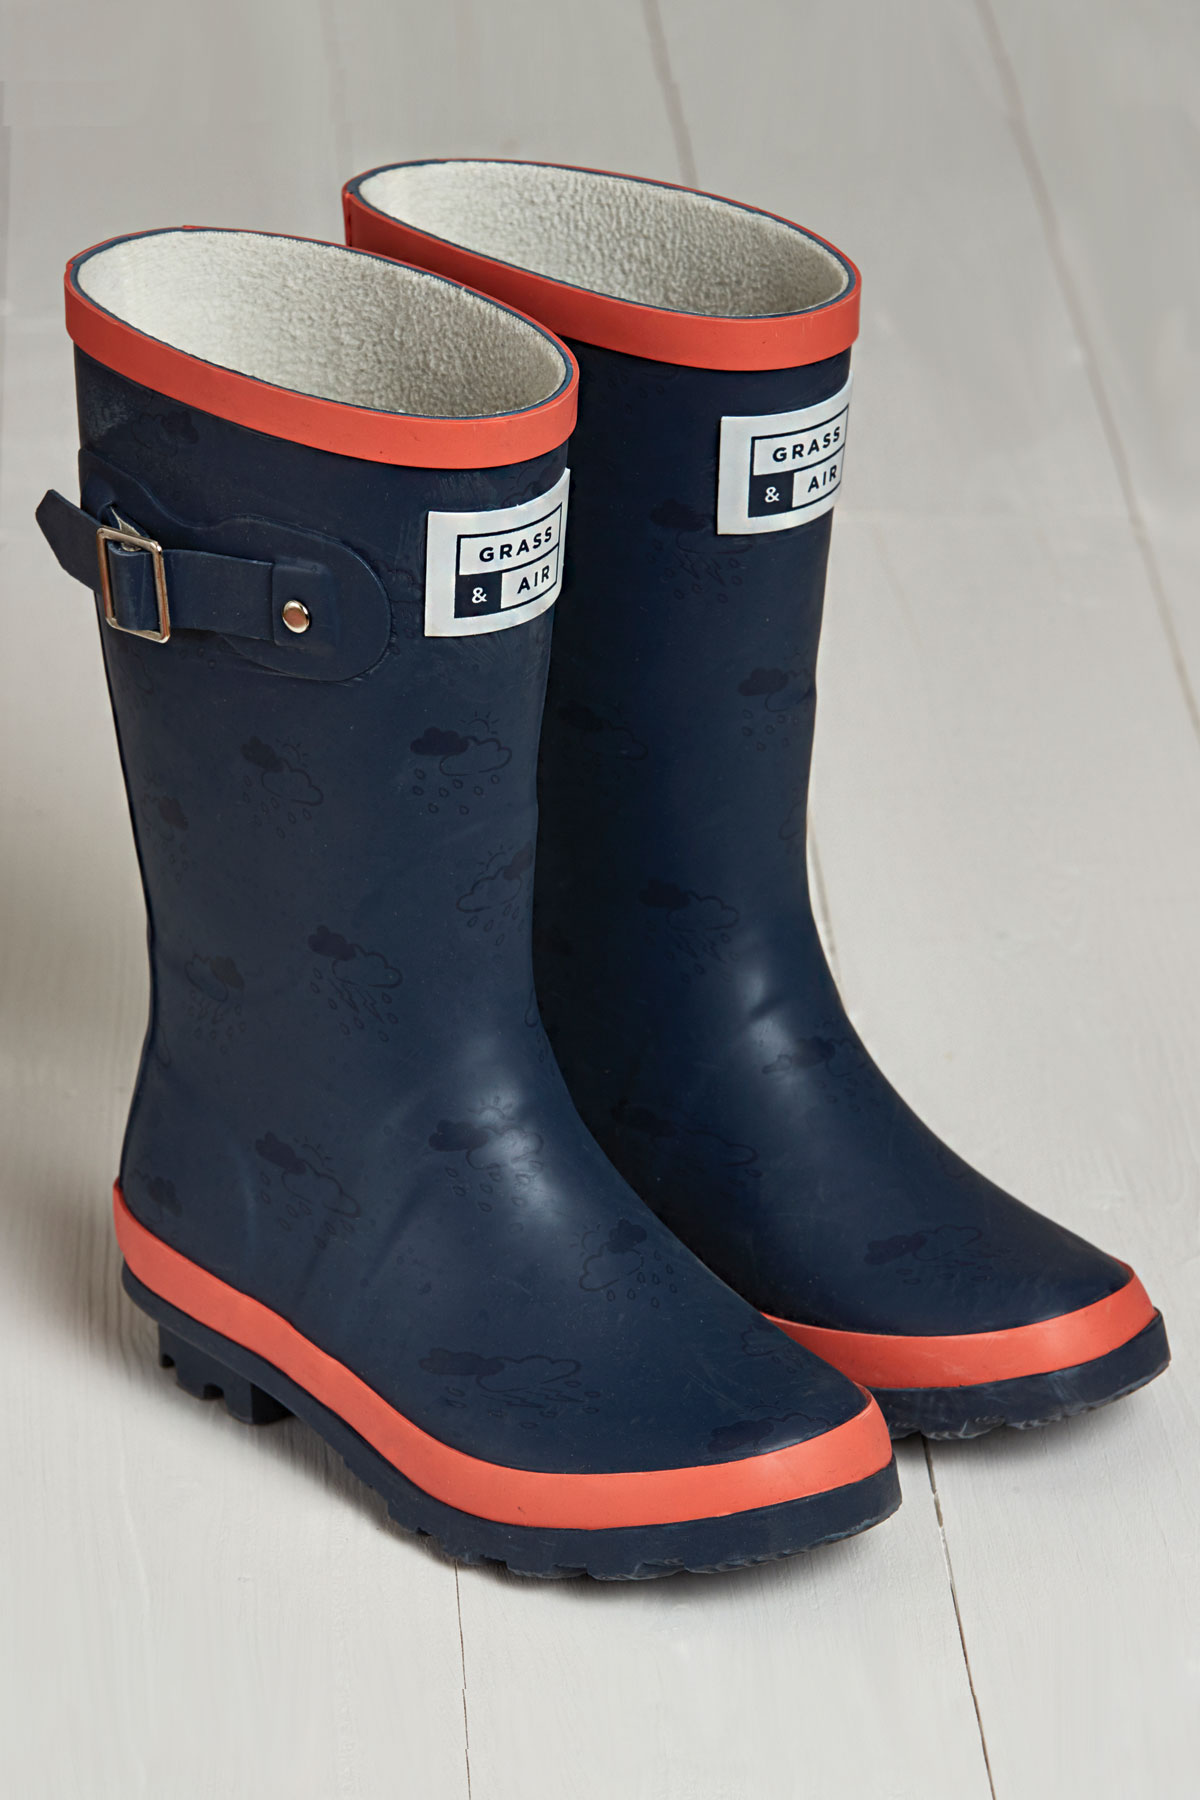 product shot of navy & coral junior wellies